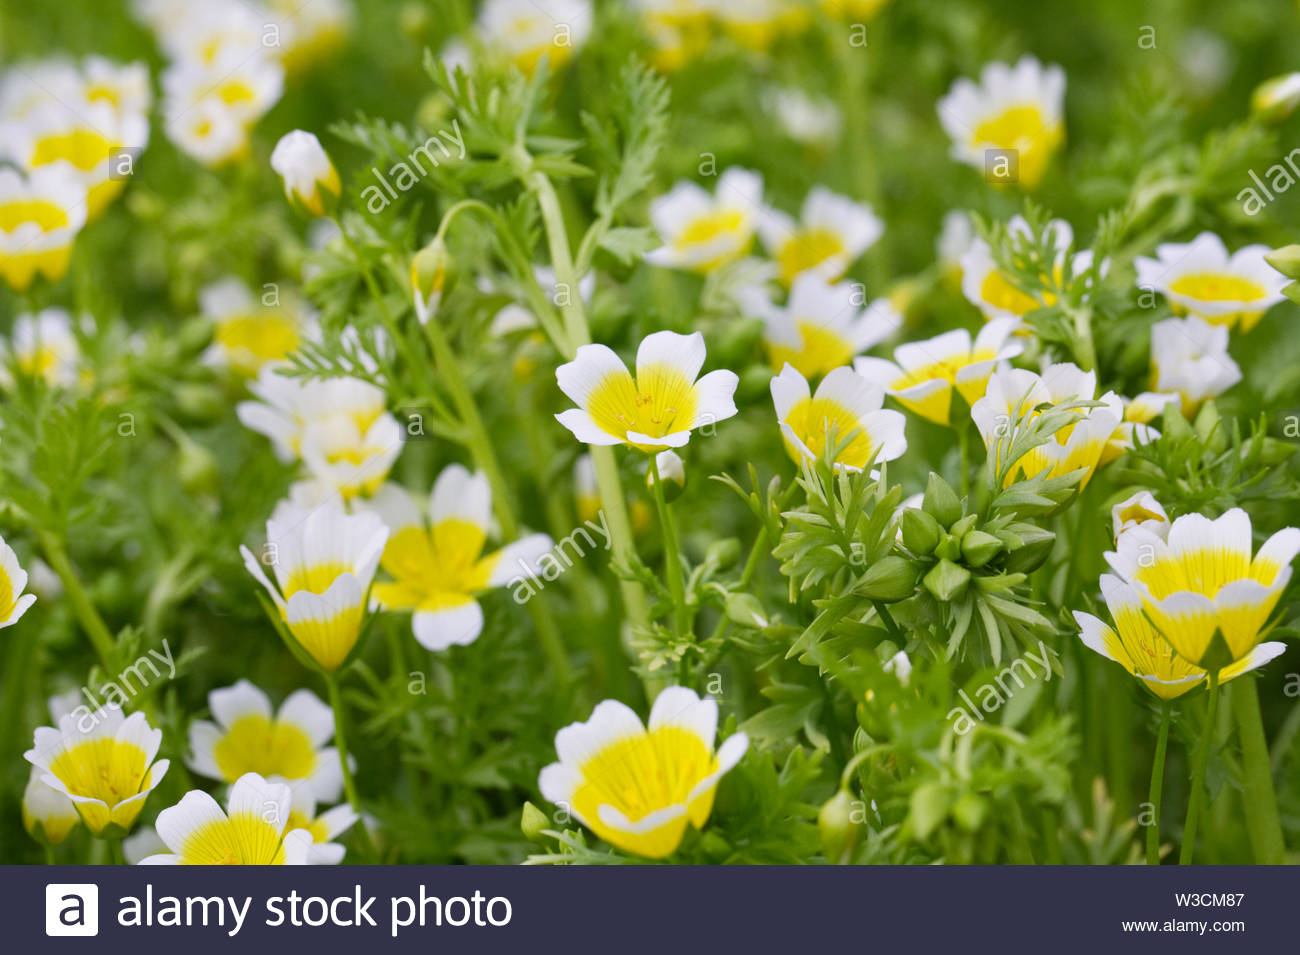 Limnanthes douglasii in the garden. Poached egg plant. - Stock Image